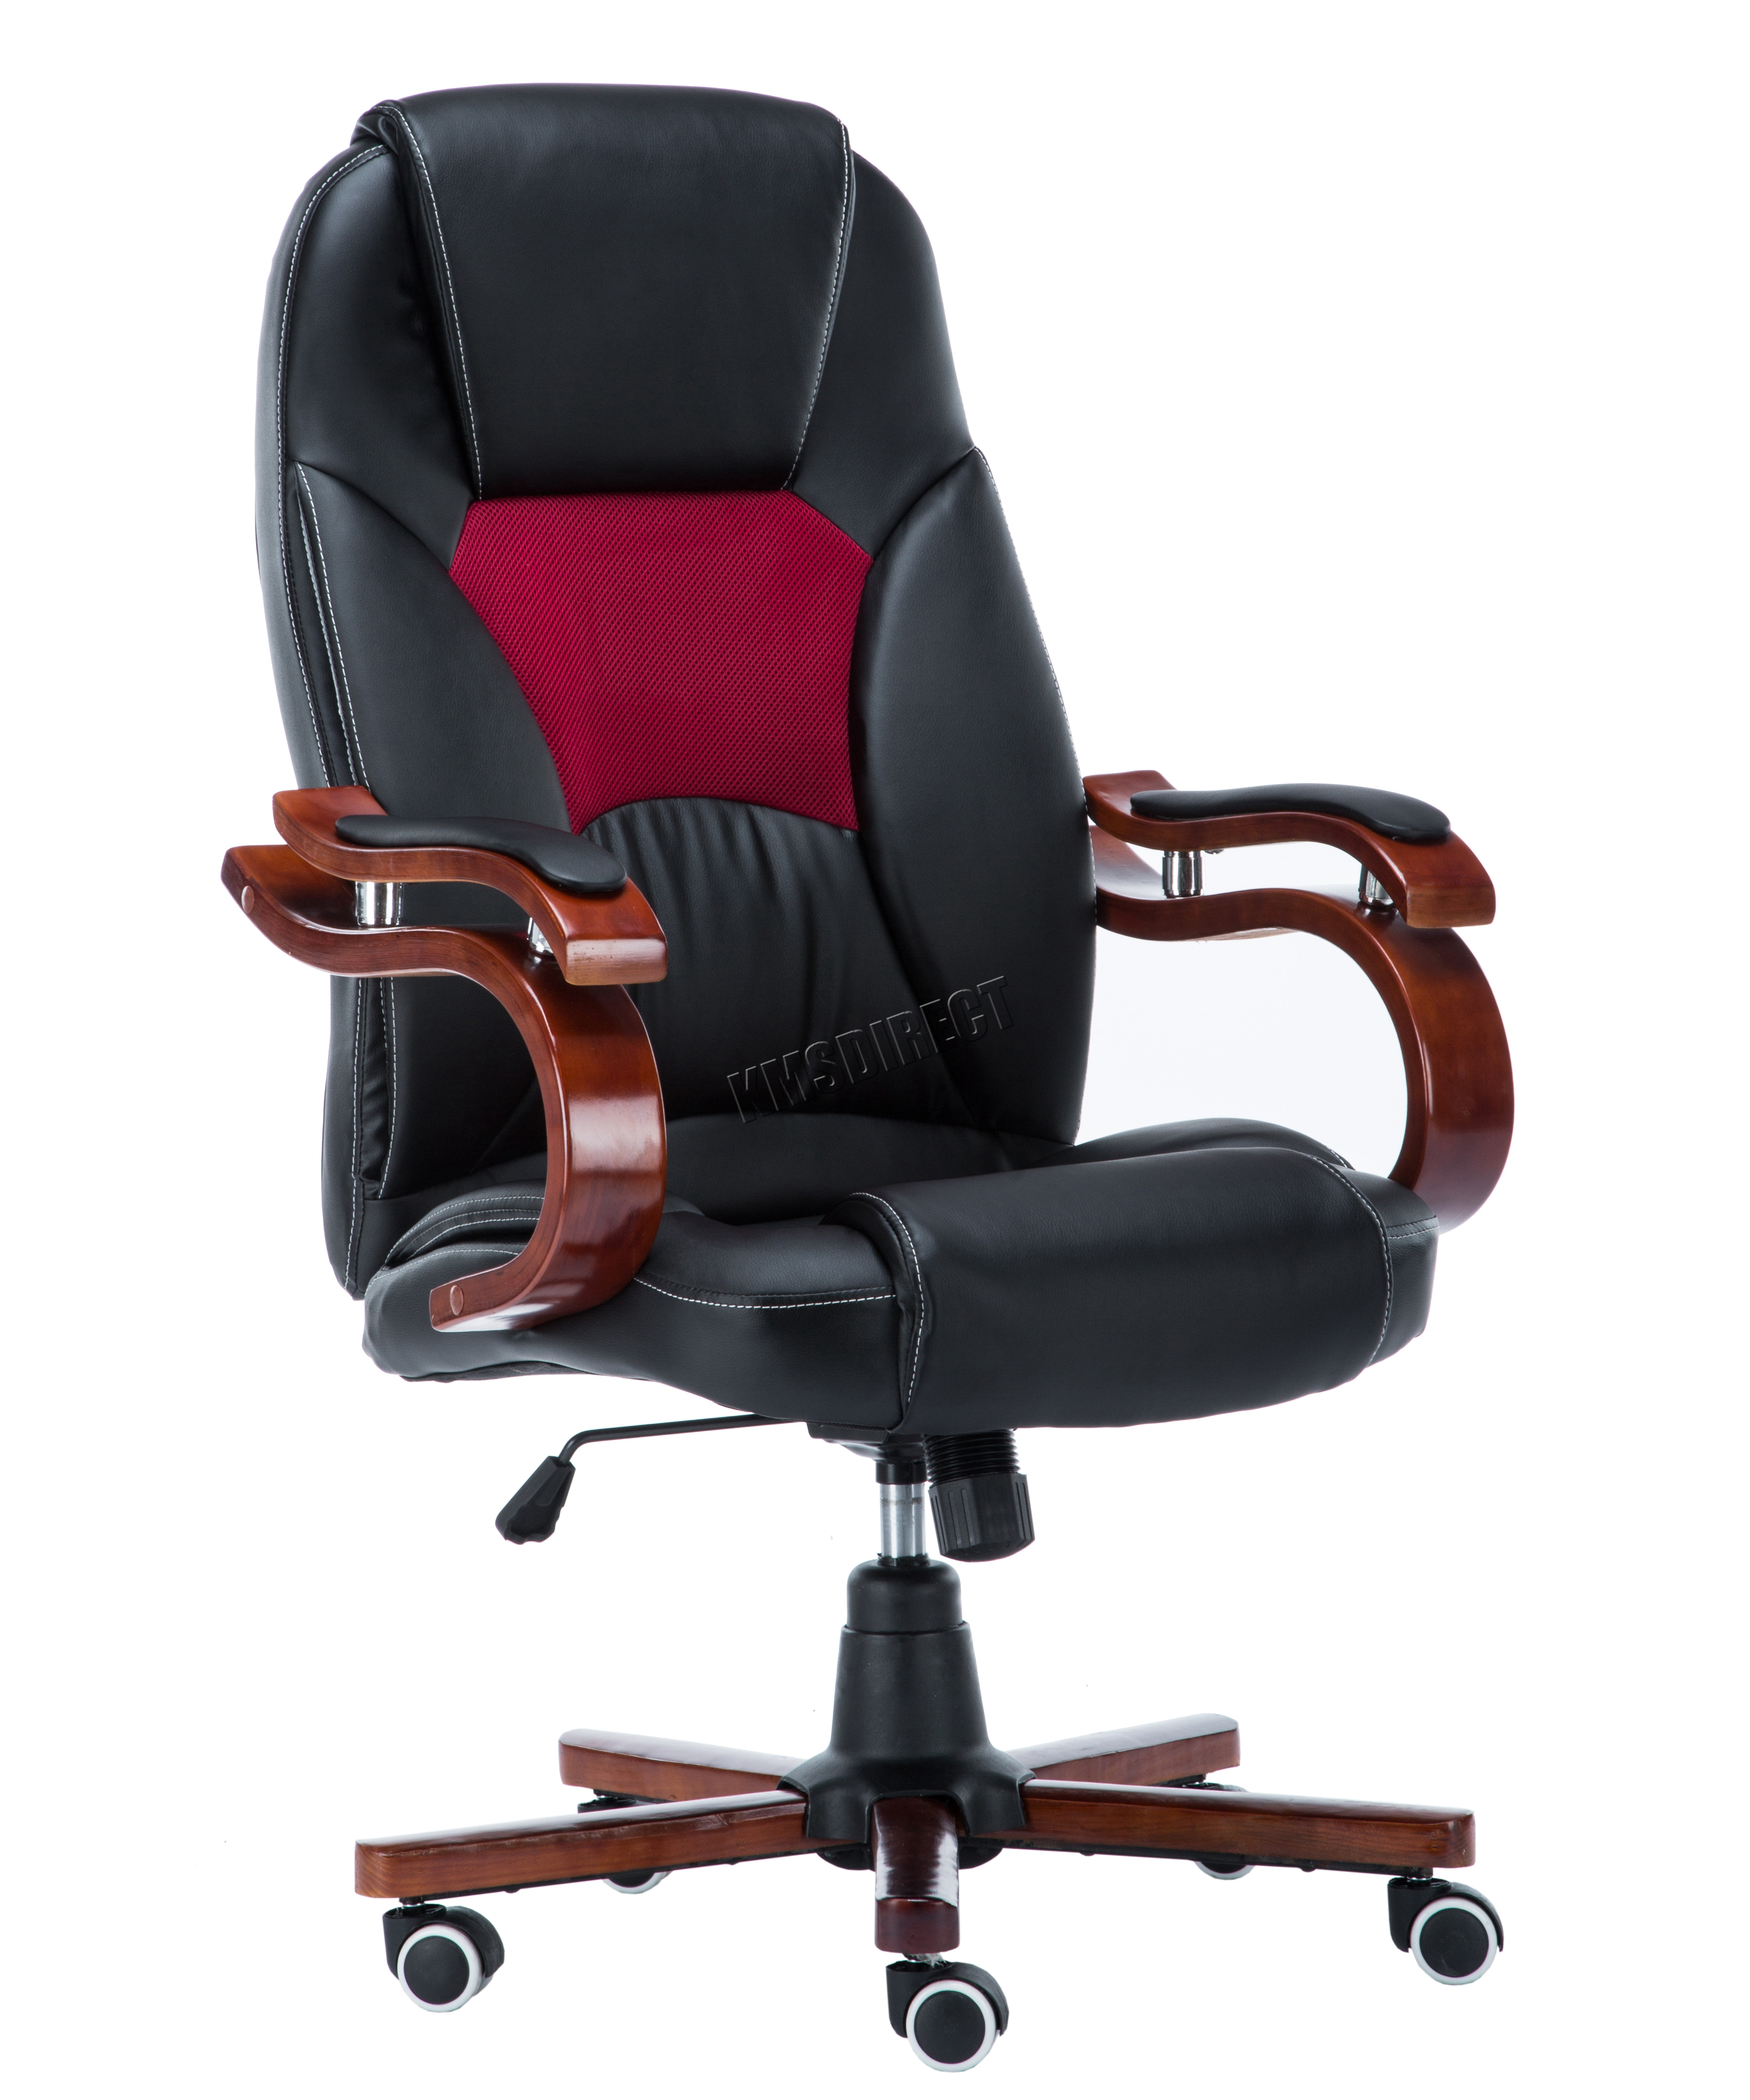 Foxhunter Computer Executive Office Desk Chair Pu Leather Swivel